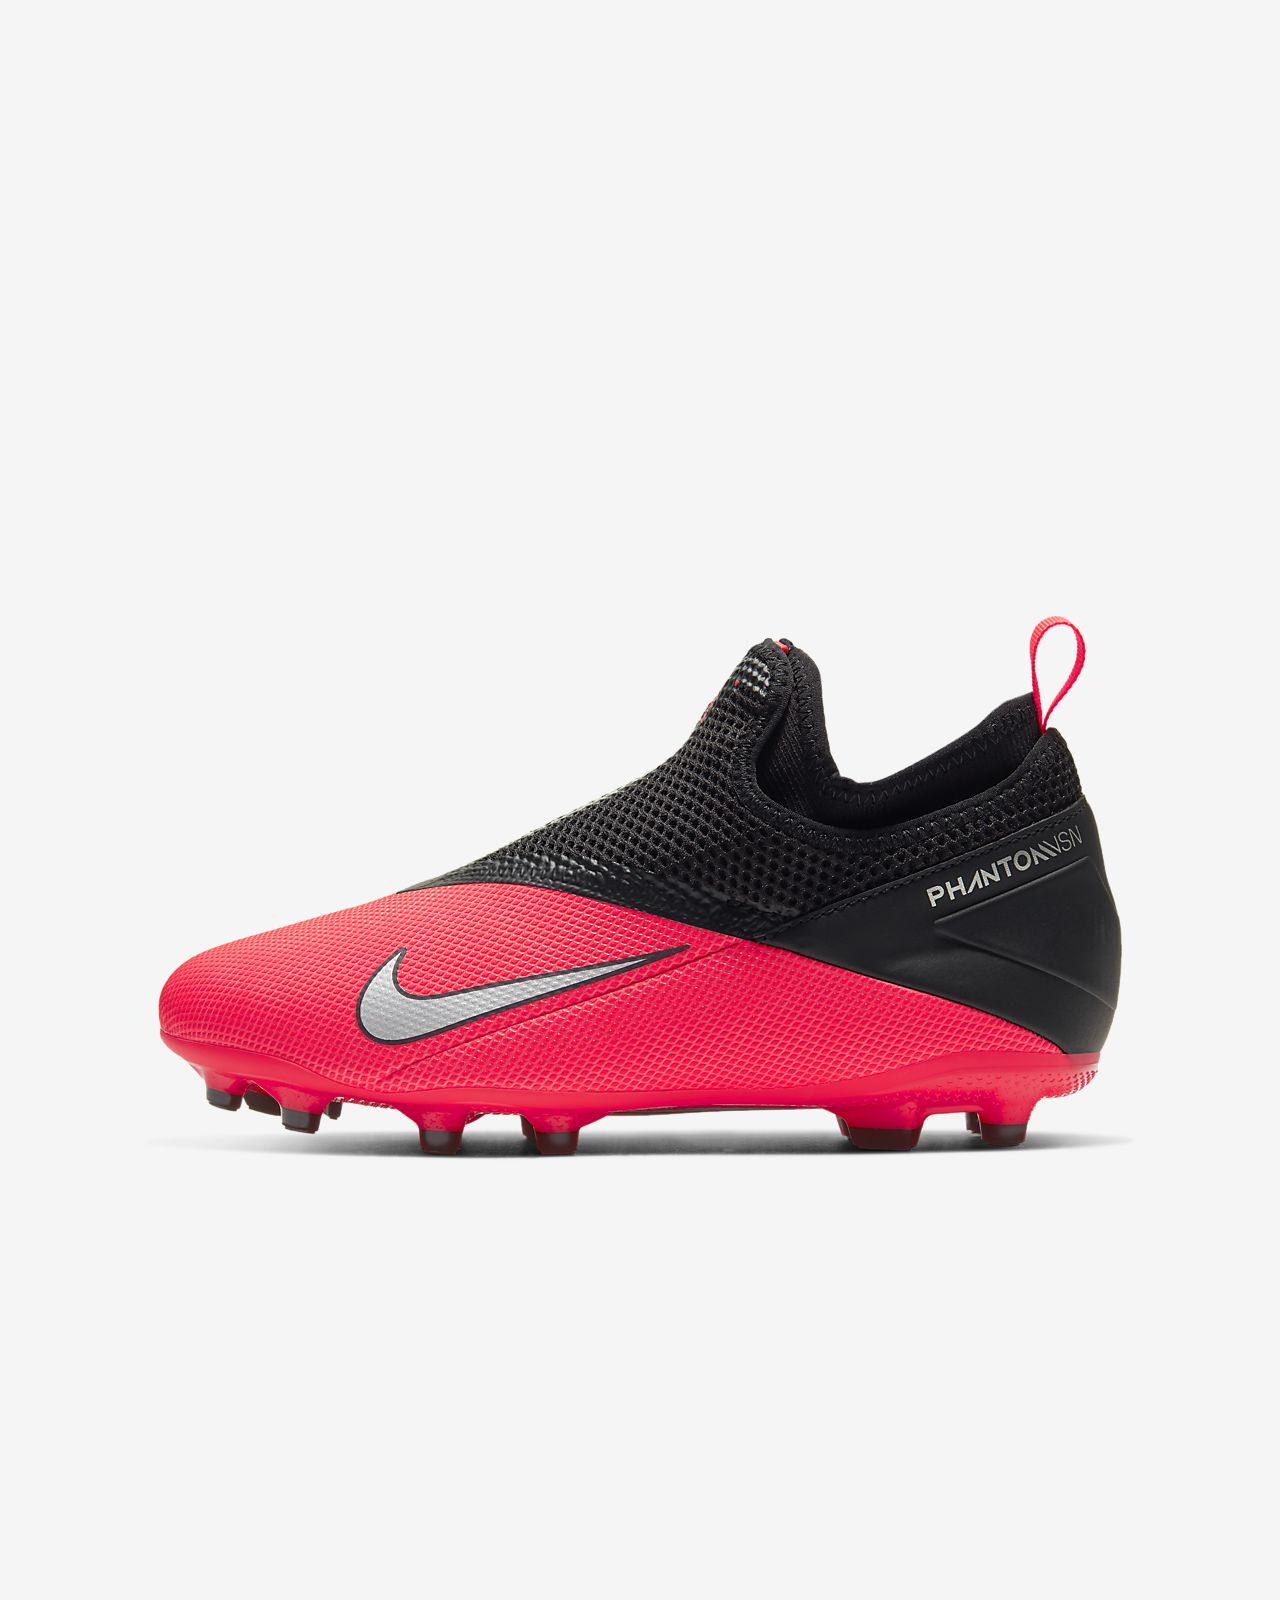 New Soccer Cleats ,| Pro:Direct Soccer US